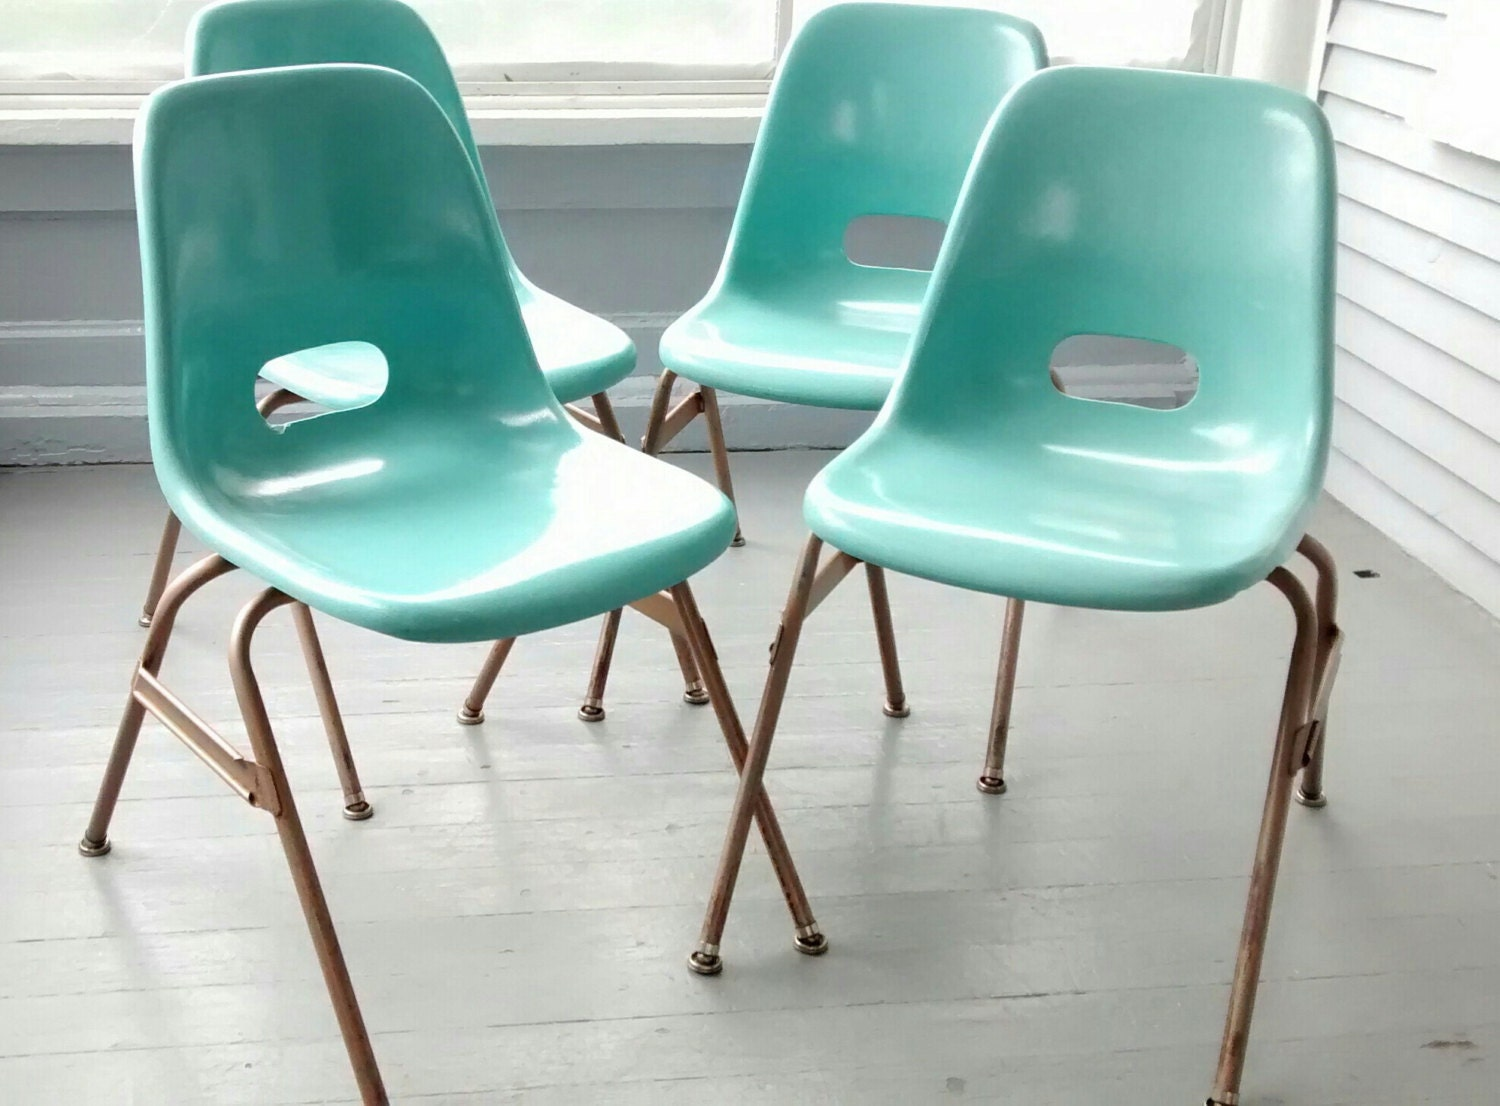 Beautiful Fiberglass Chairs Krueger Vintage Mid Century